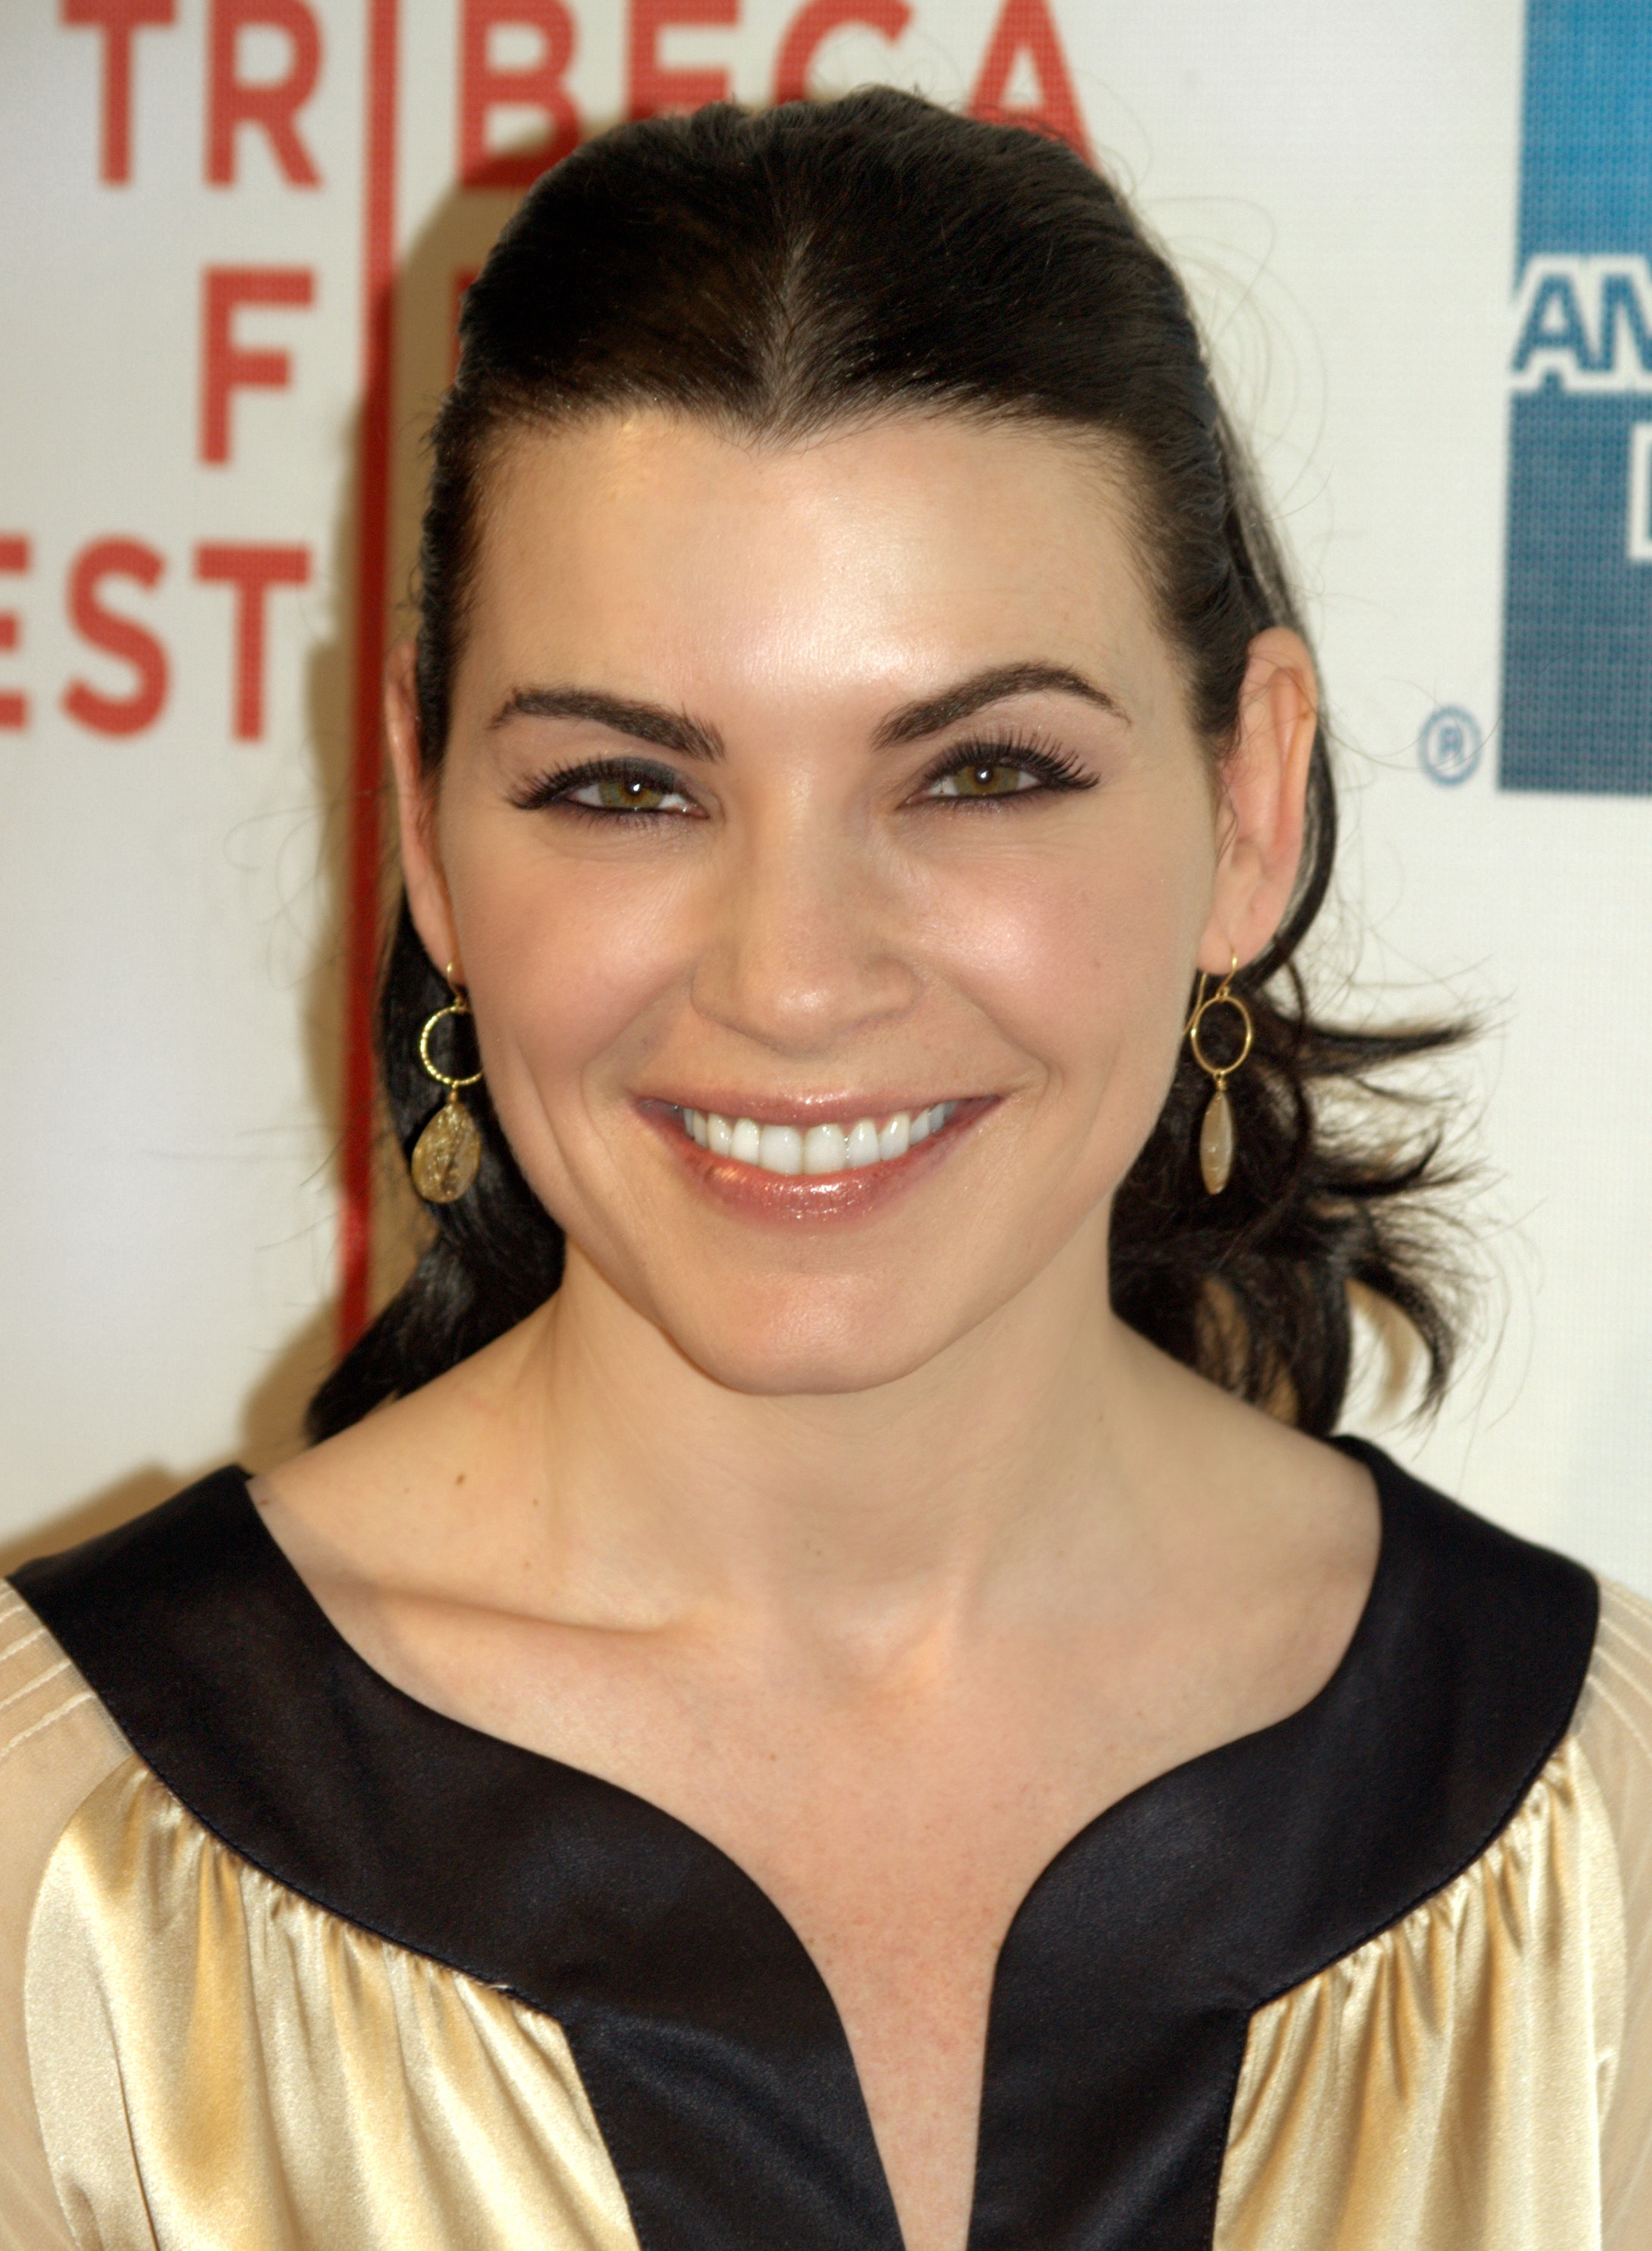 julianna margulies on ellen